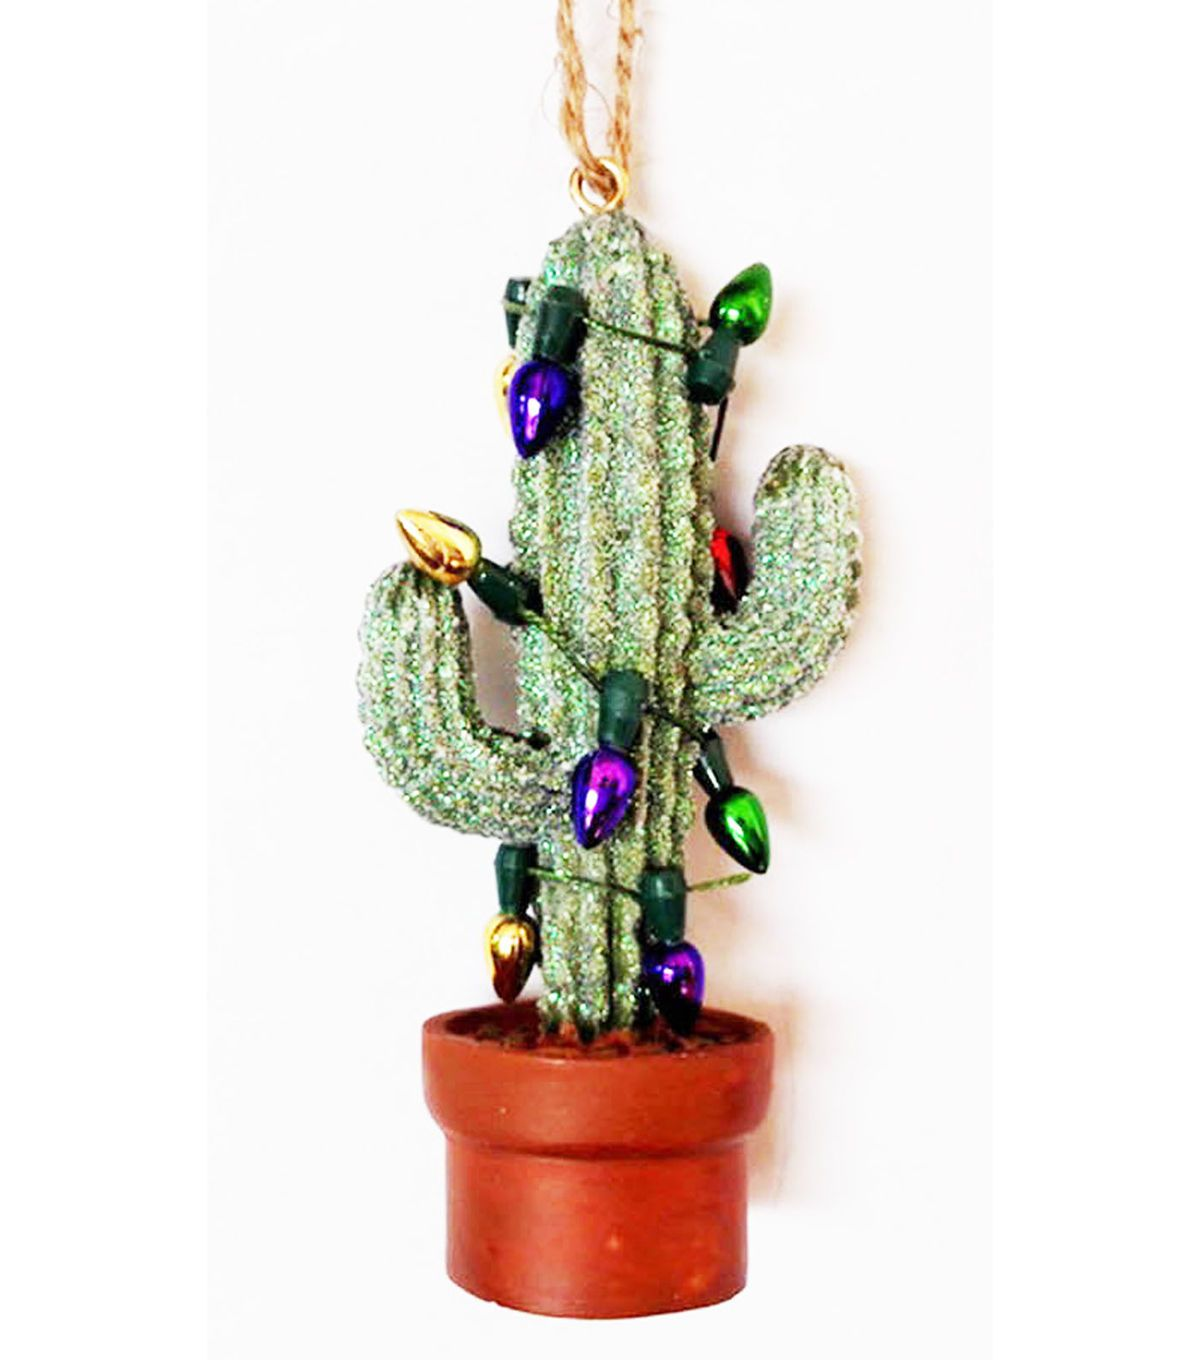 Maker's Holiday Cactus in Lights Ornament